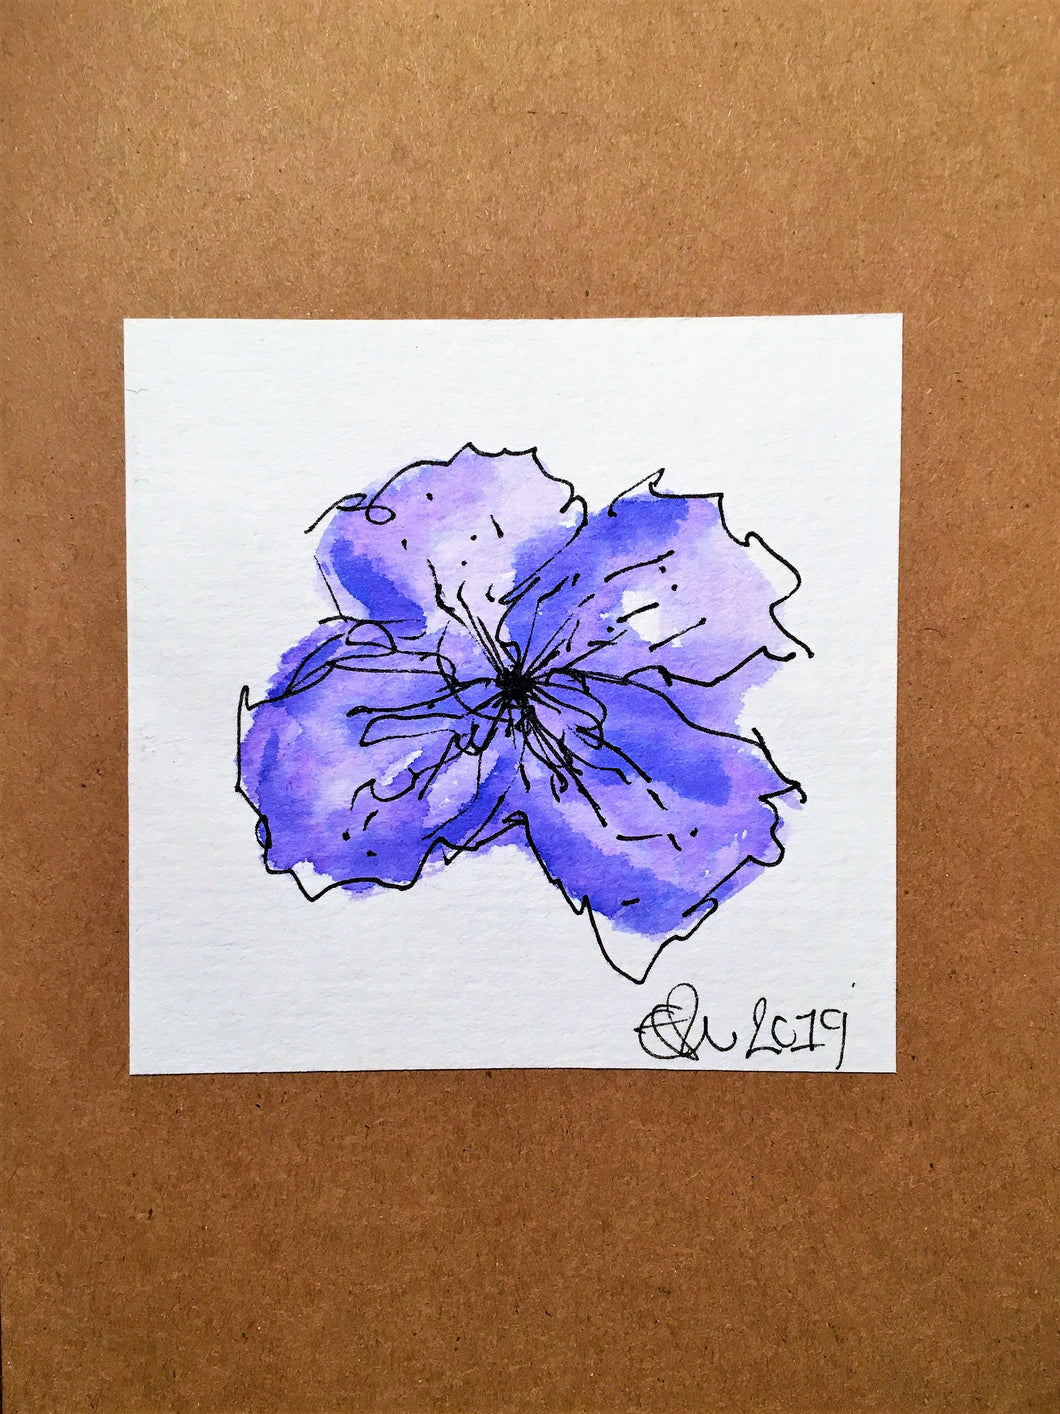 Handpainted Watercolour Greeting Card - Abstract Purple Pansy Flower Design - eDgE dEsiGn London